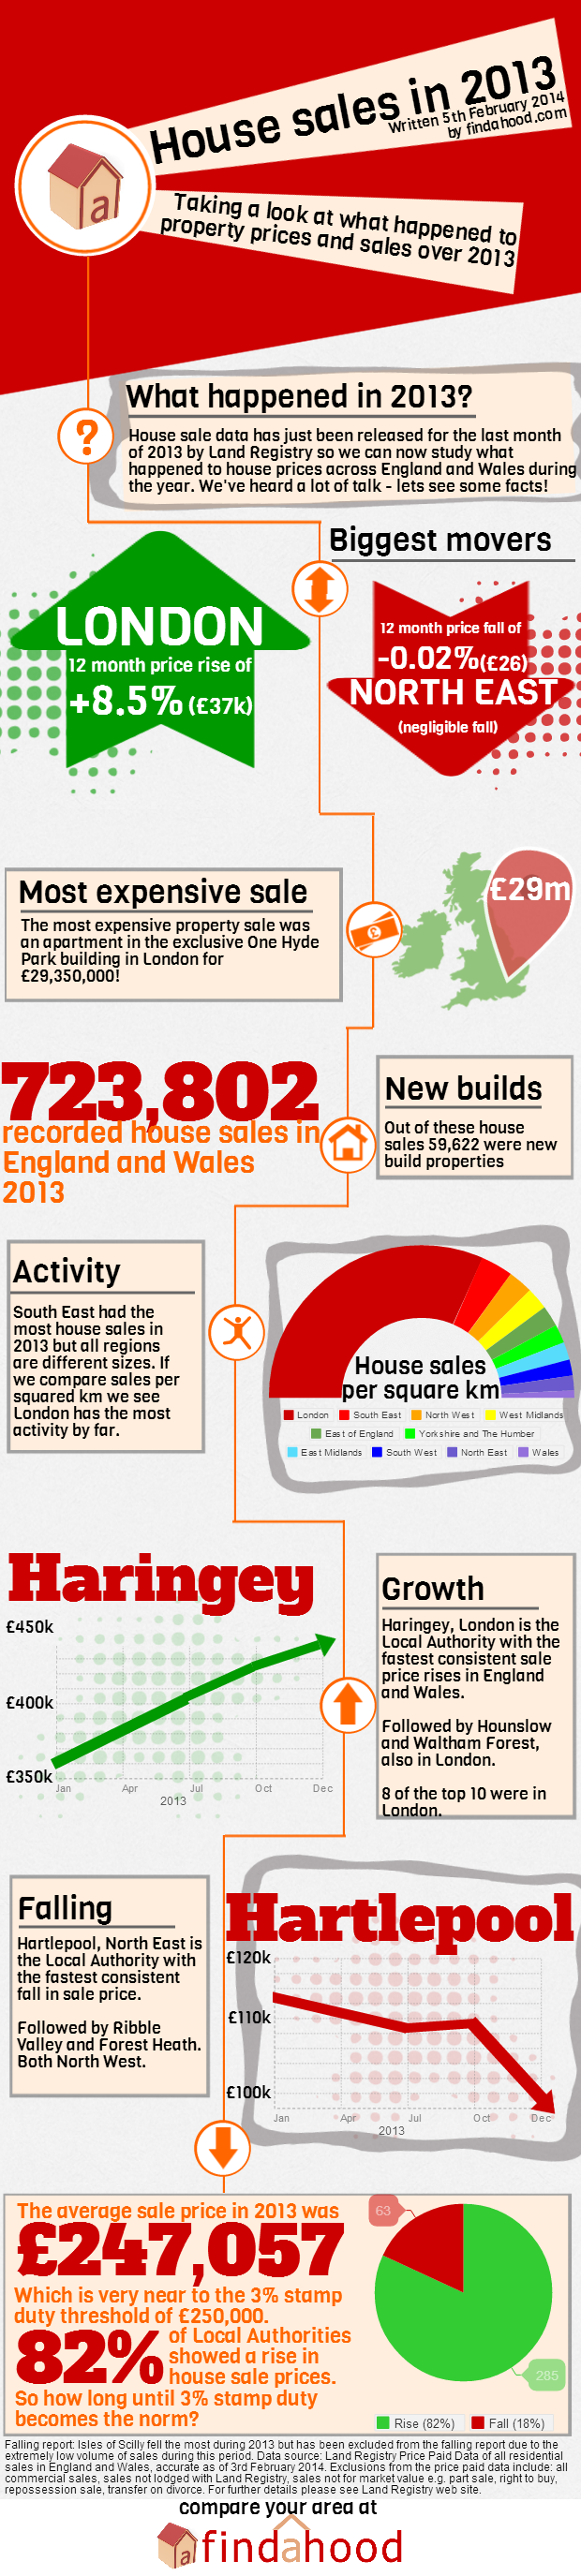 House prices and sales of 2013 infographic